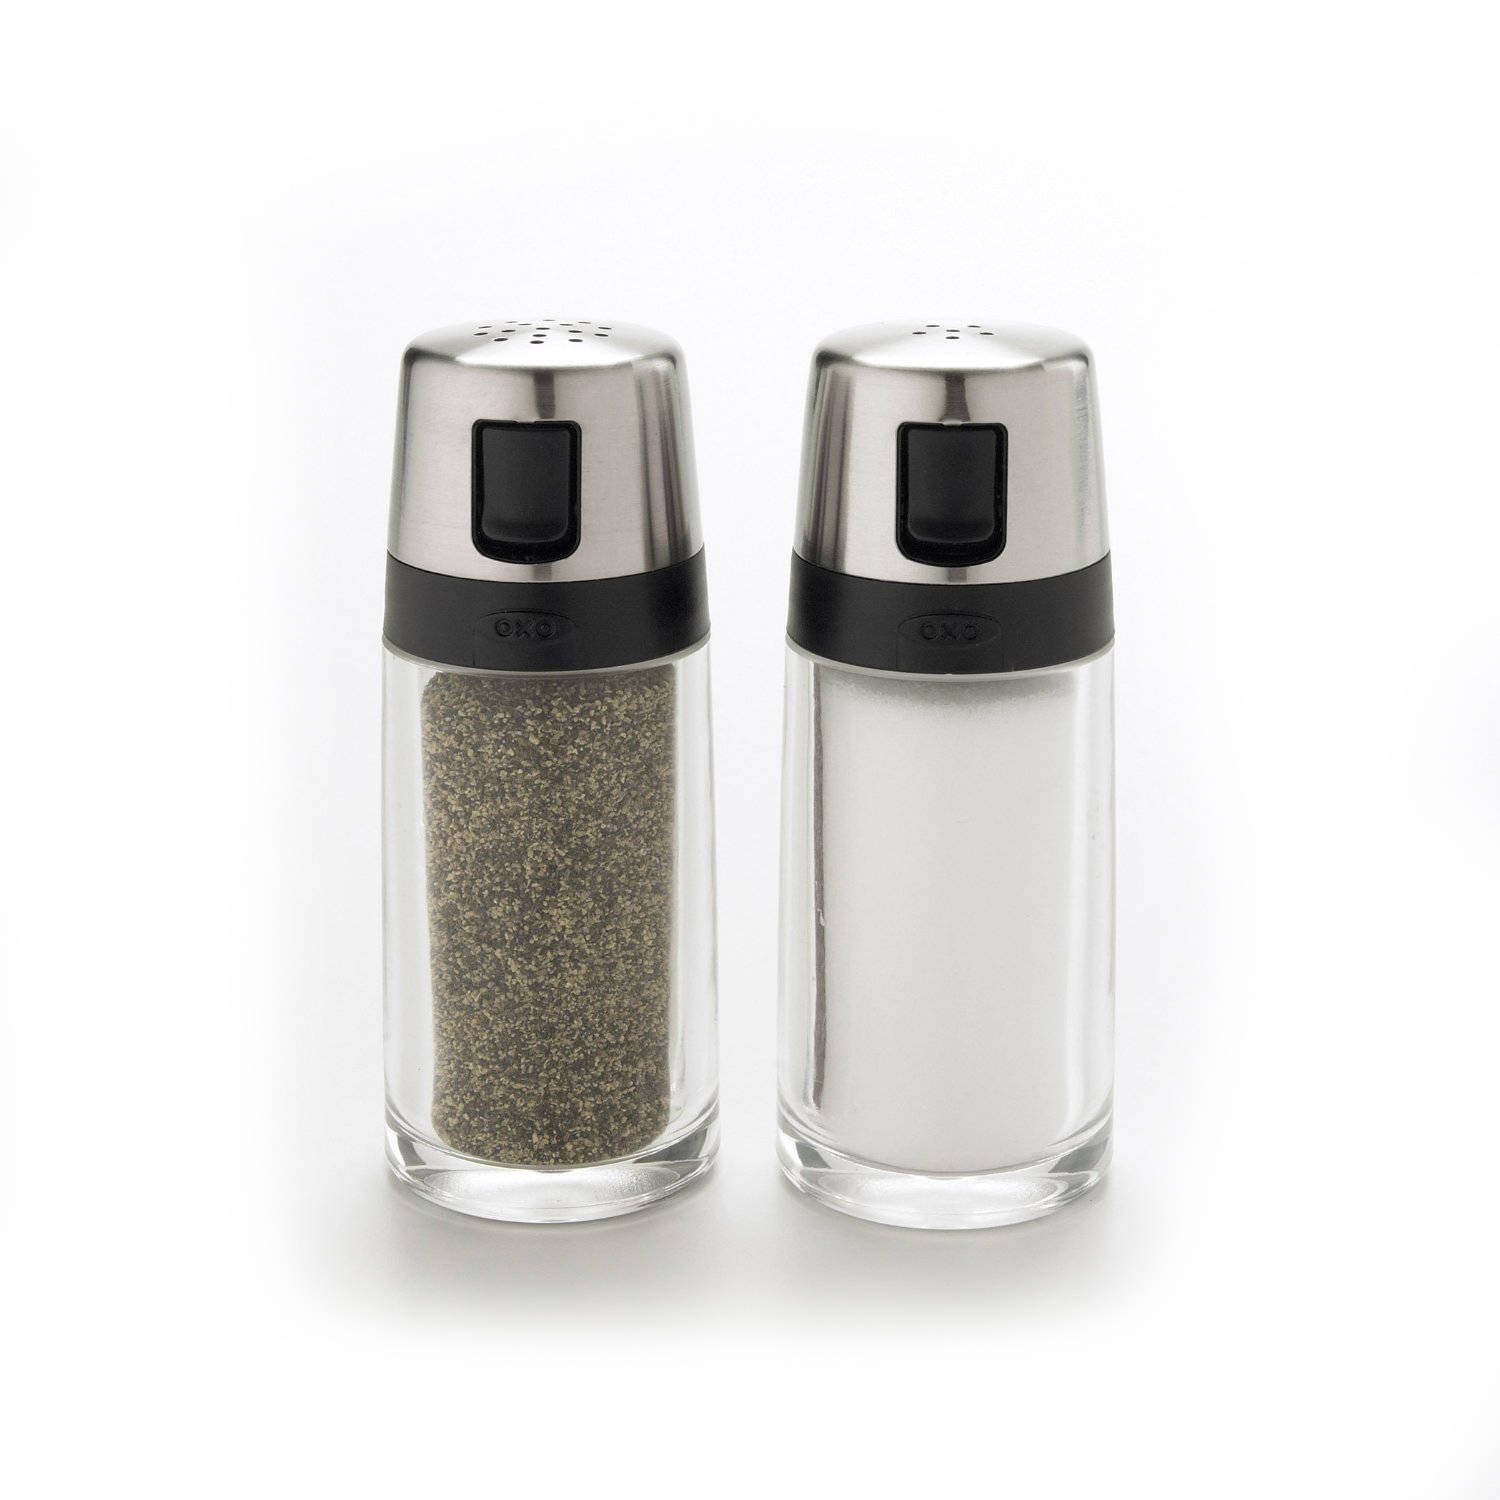 OXO Good Grips Salt and Pepper Shaker Set by OXO